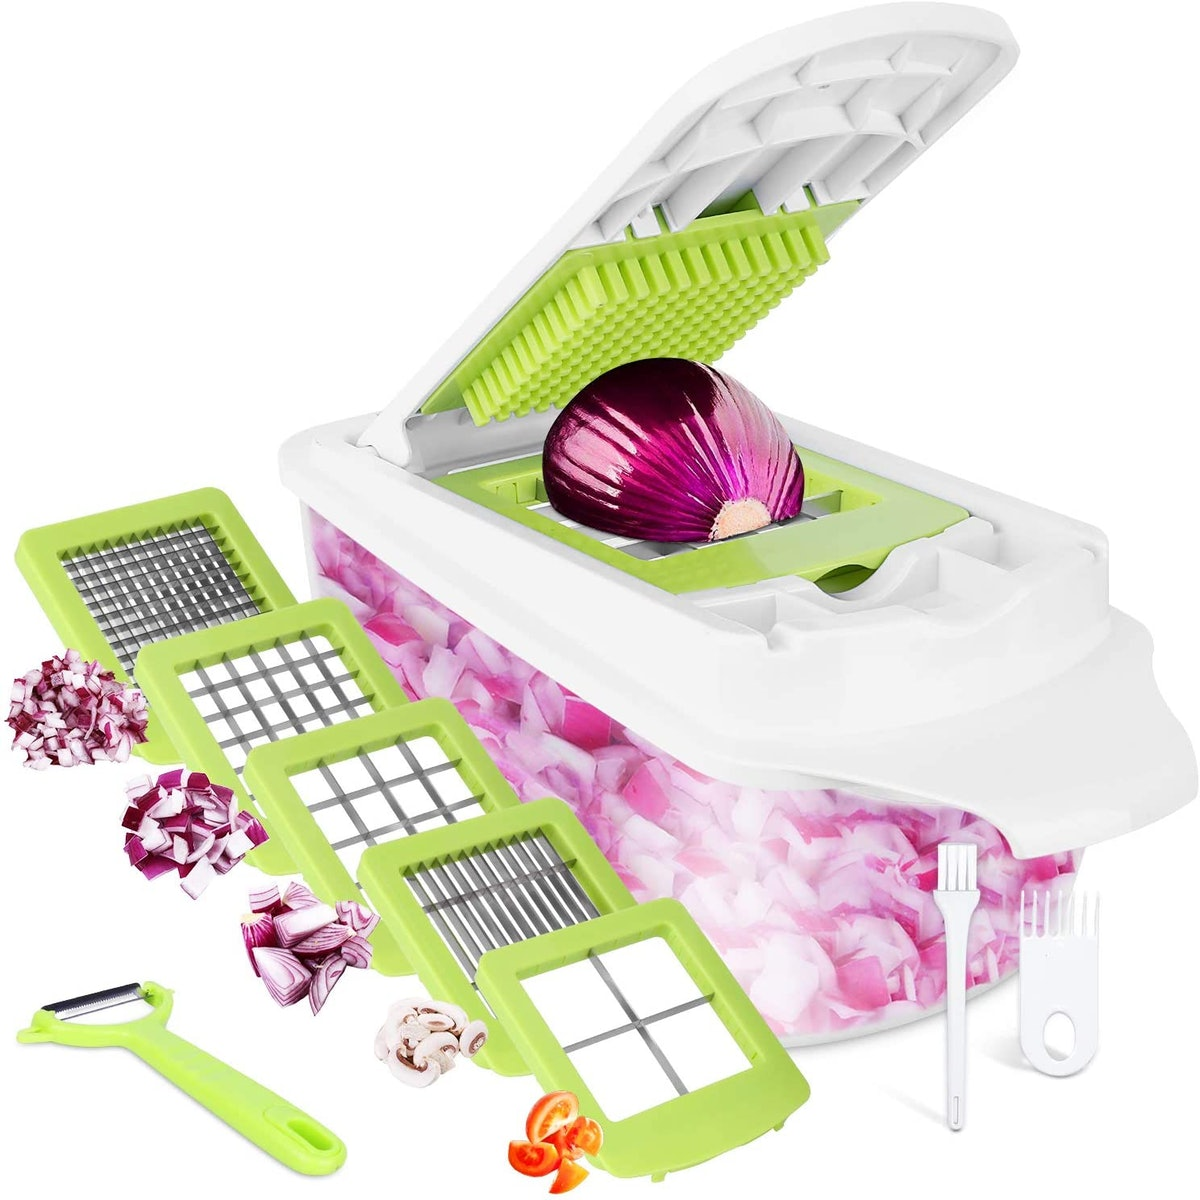 12-in-1 Sedhoom Food Choppers and Dicers Hand